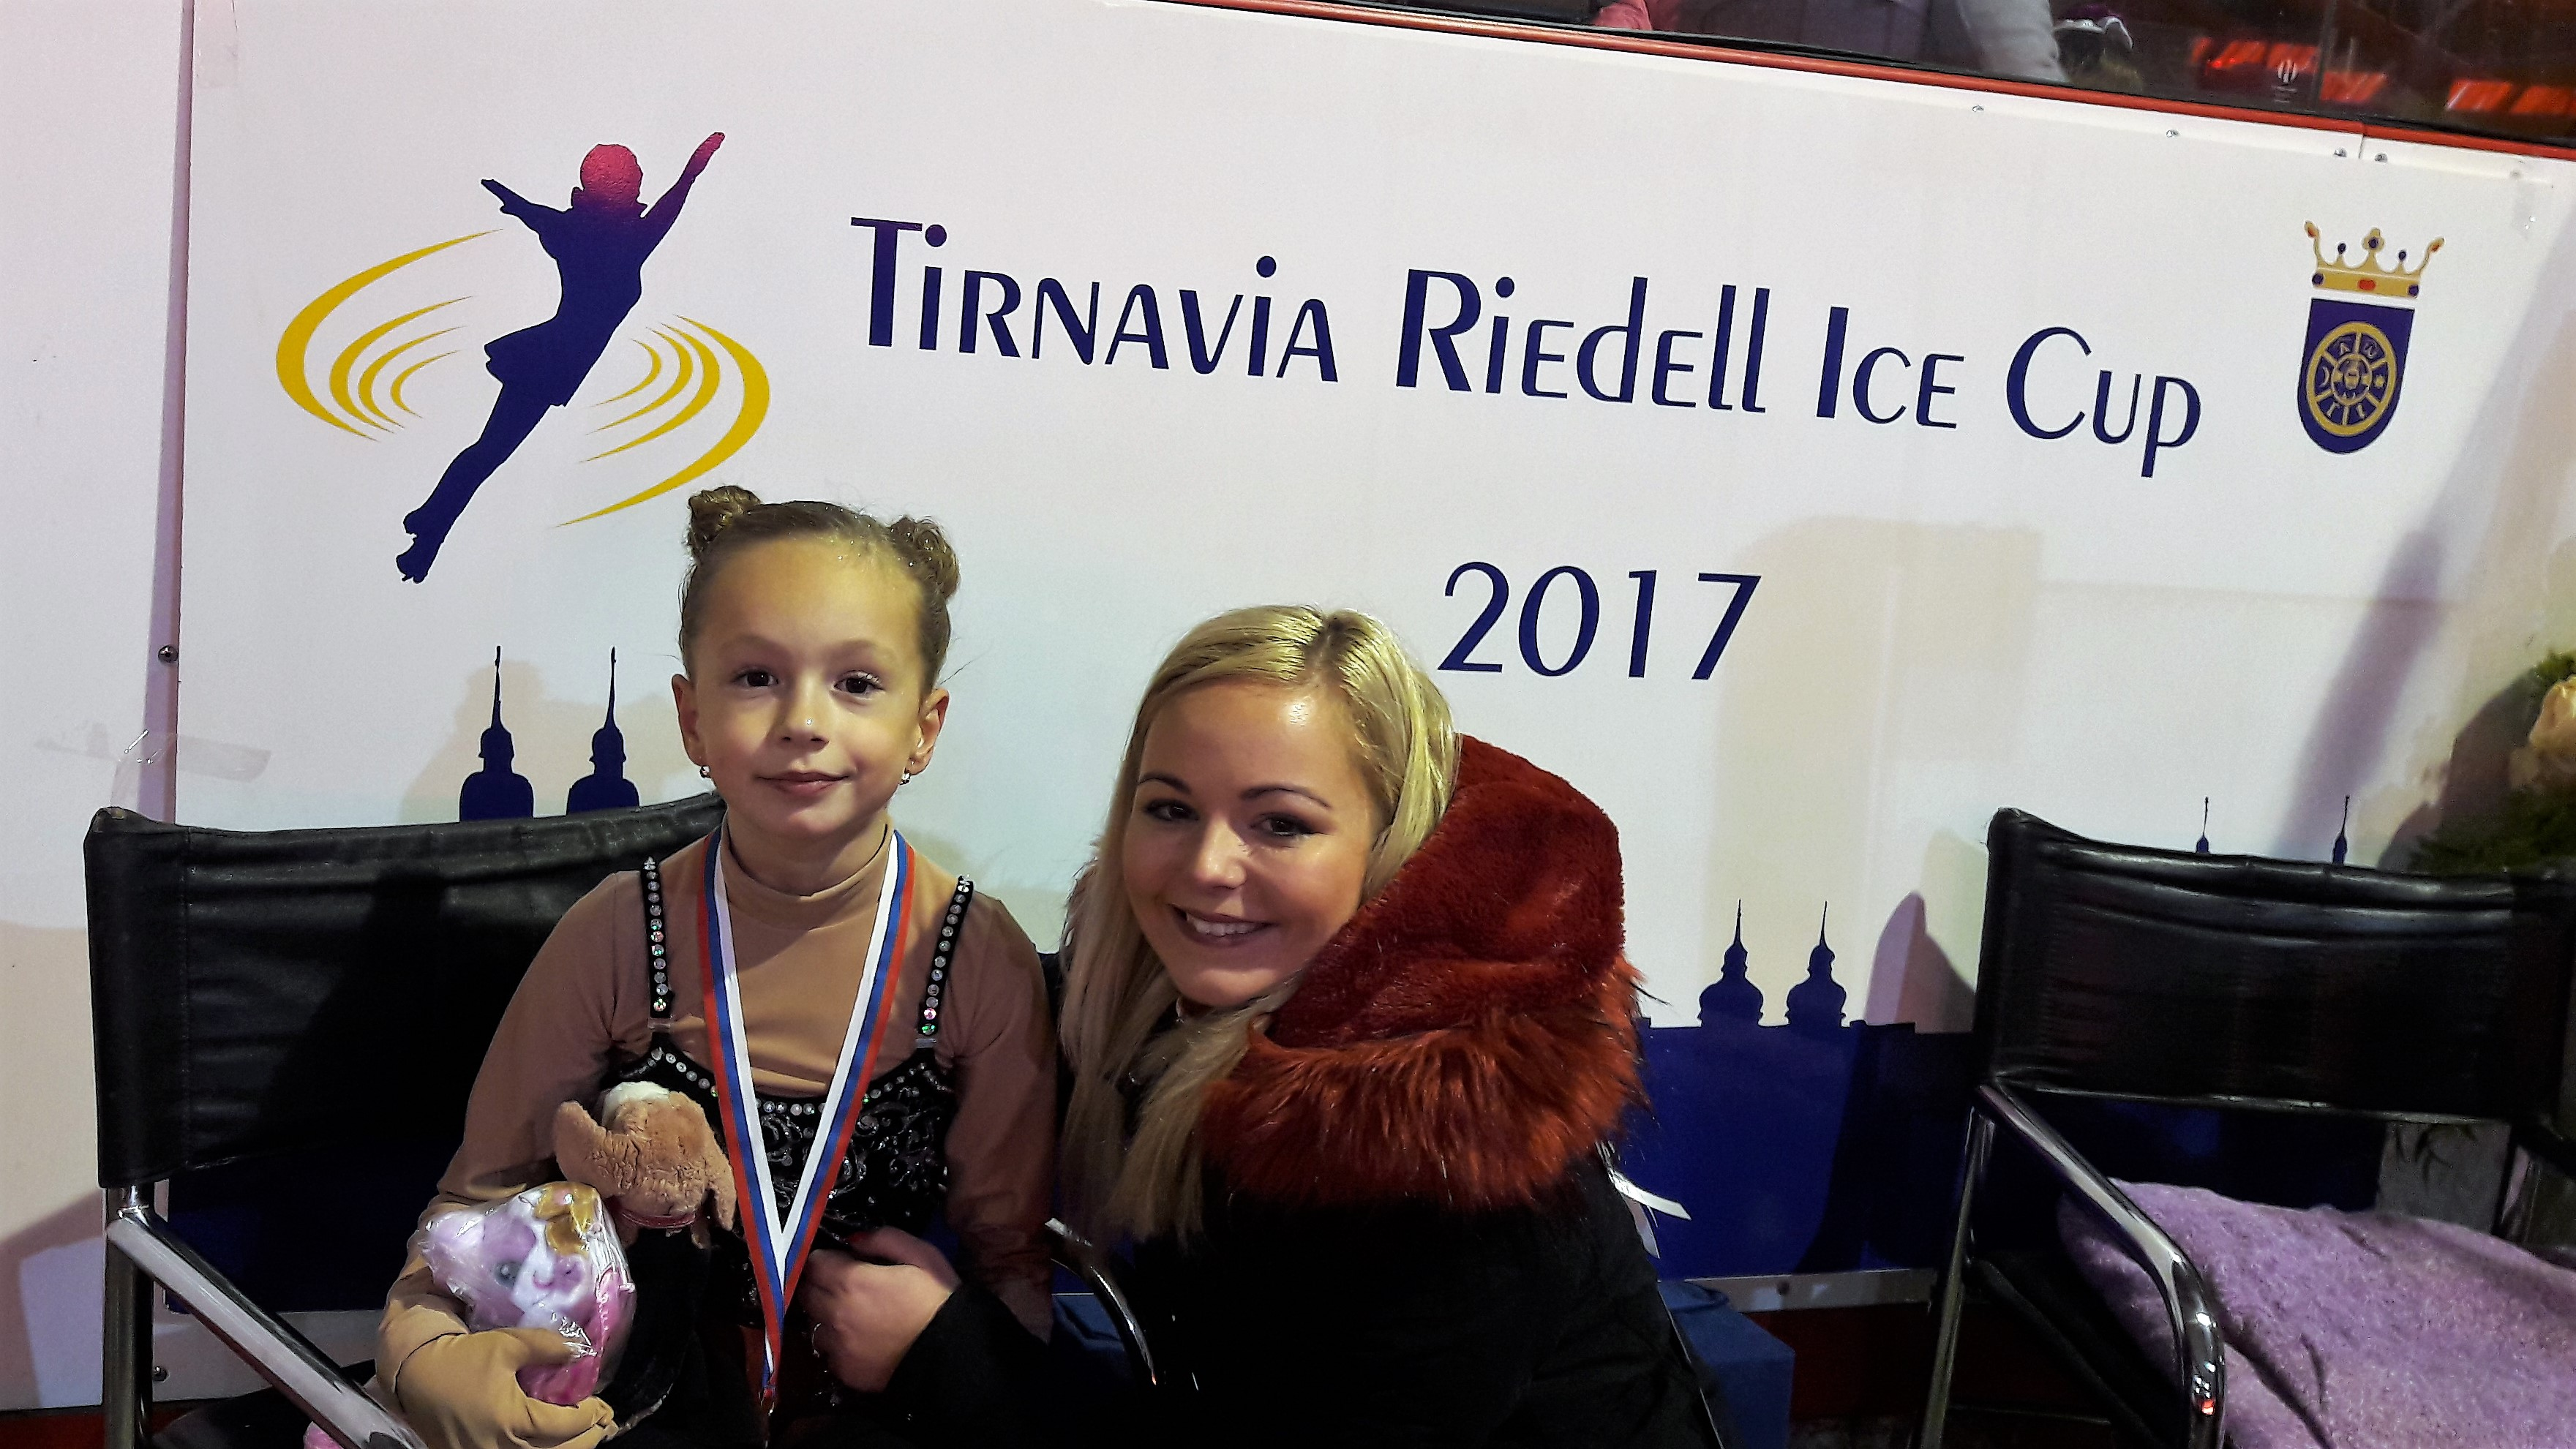 10th Tirnavia Riedell Ice Cup